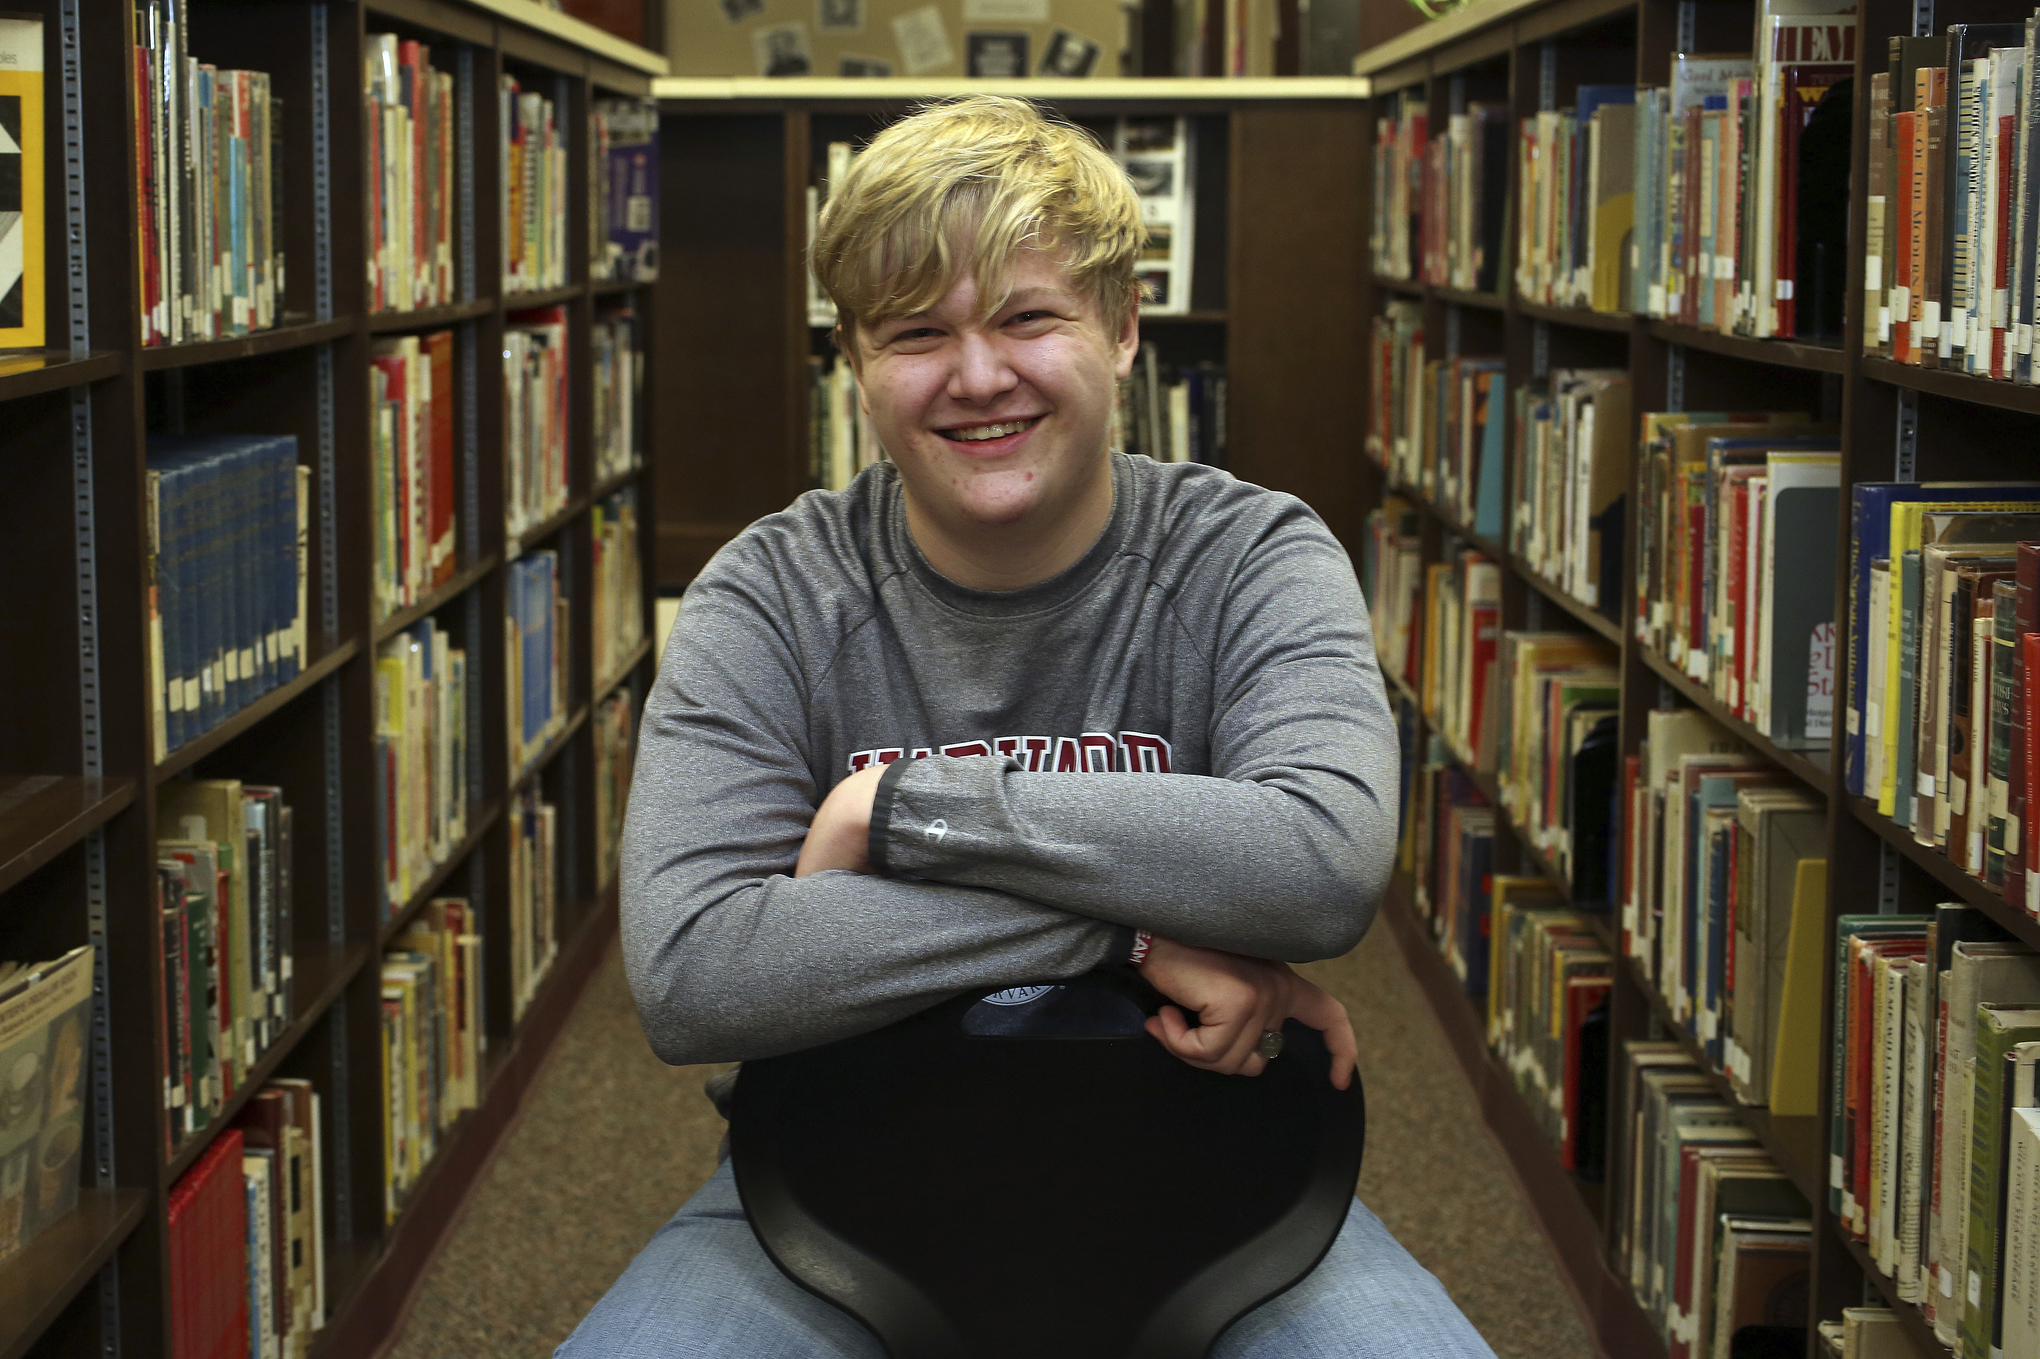 Ulysses High School senior Braxton Moral sits for a portrait at the school in Ulysses, Kan., on Wednesday, Dec. 12, 2018. The 16-year old is set to graduate from Harvard and high school in May 2019.